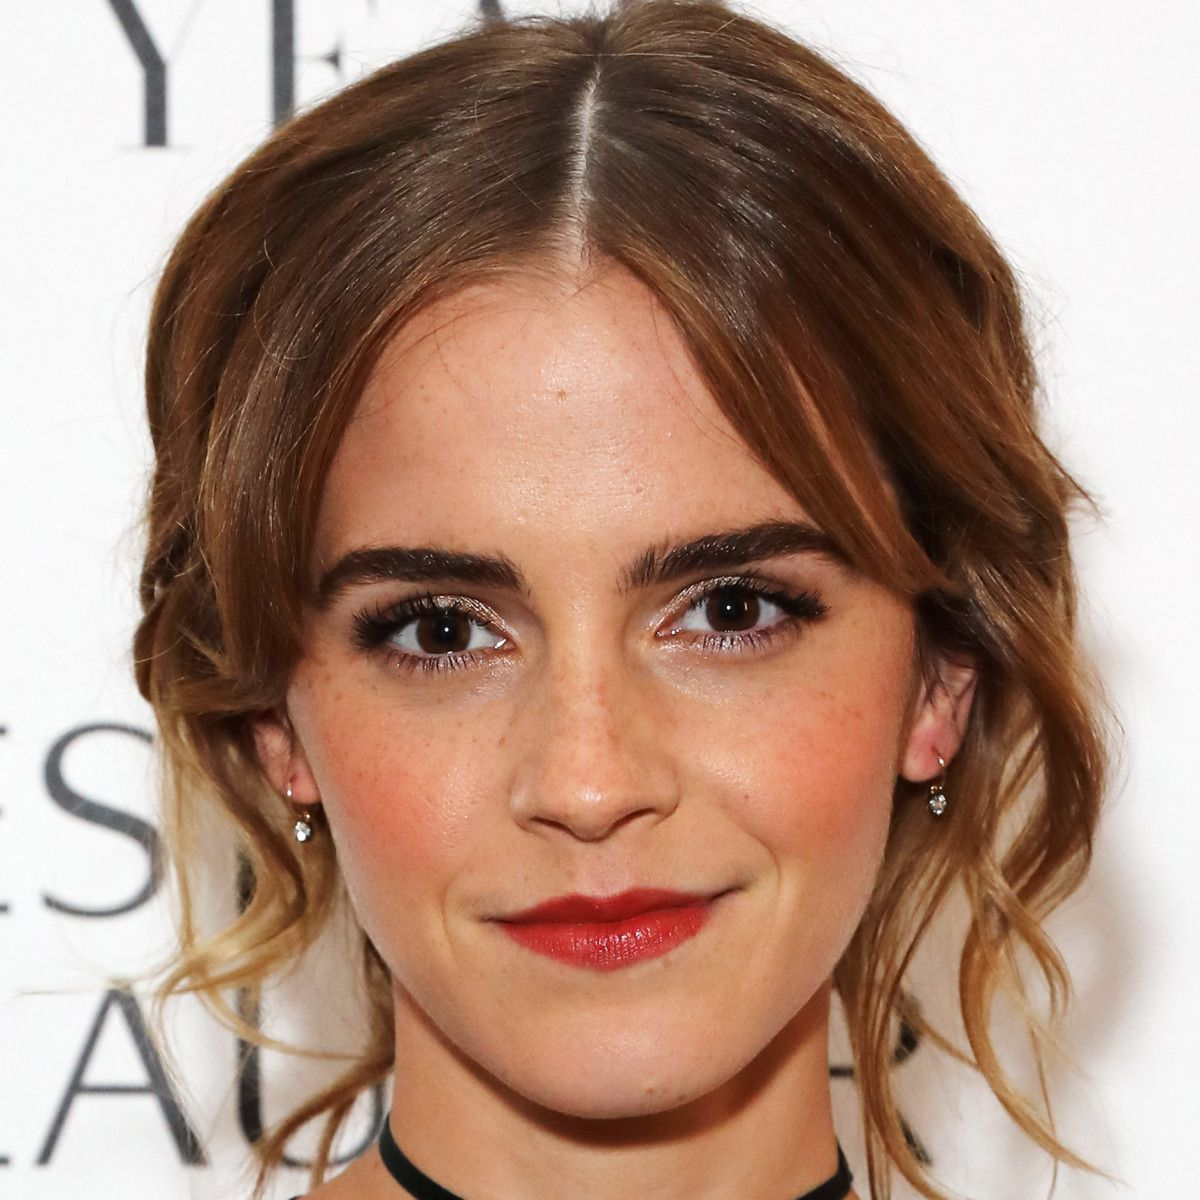 Emma Watson Biography, Biodata, Wiki, Age, Height, Weight, Affairs & More